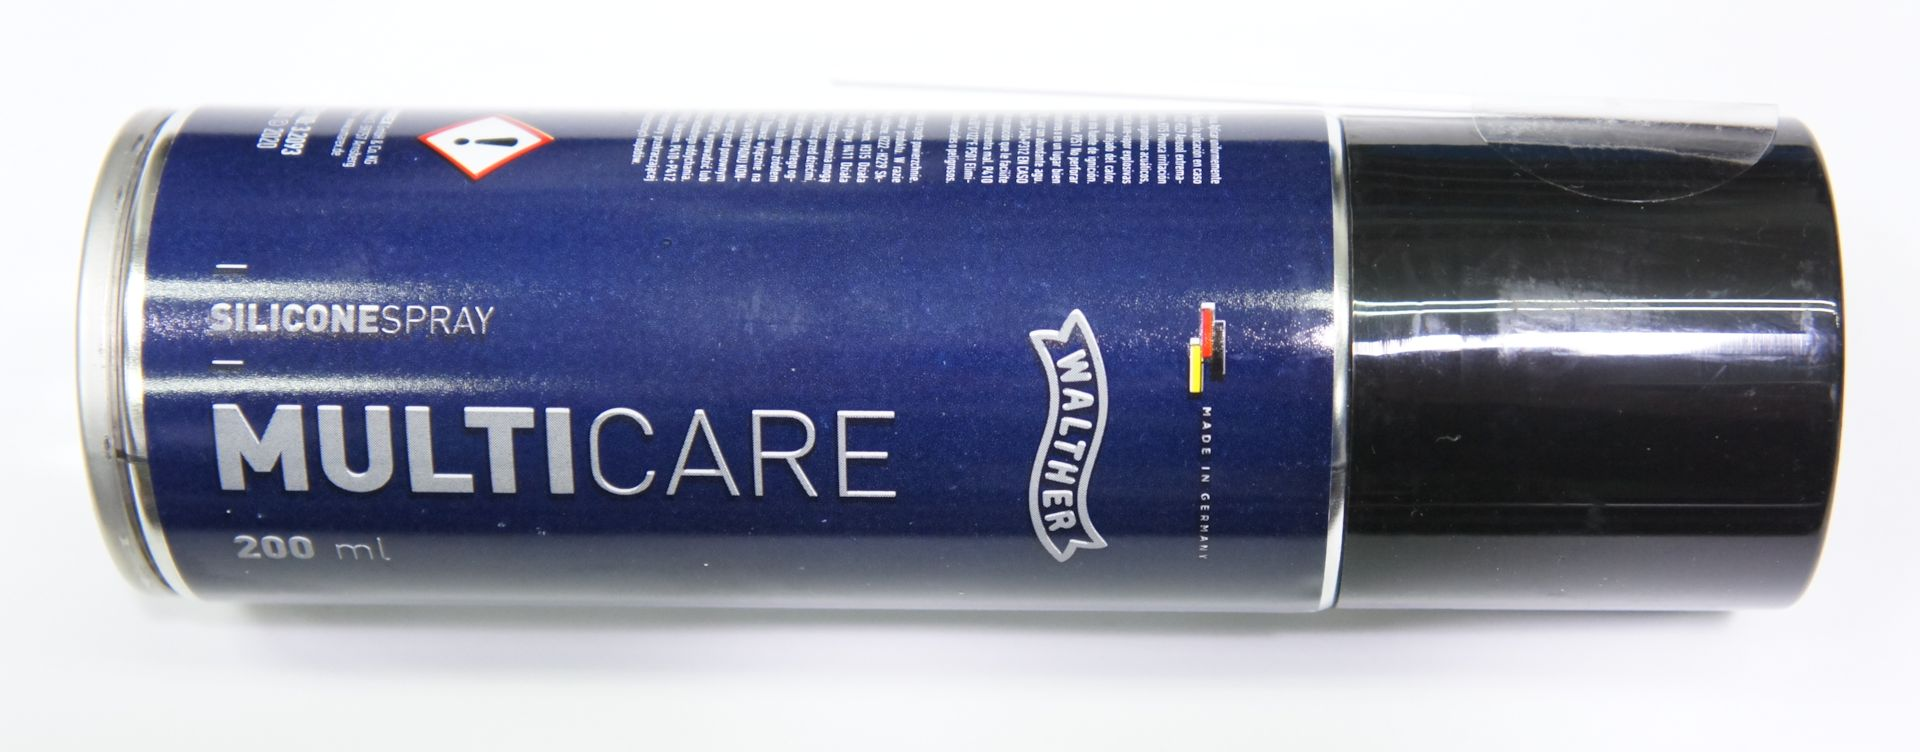 Silikonspray, 200ml der Marke Walther, MULTICARE